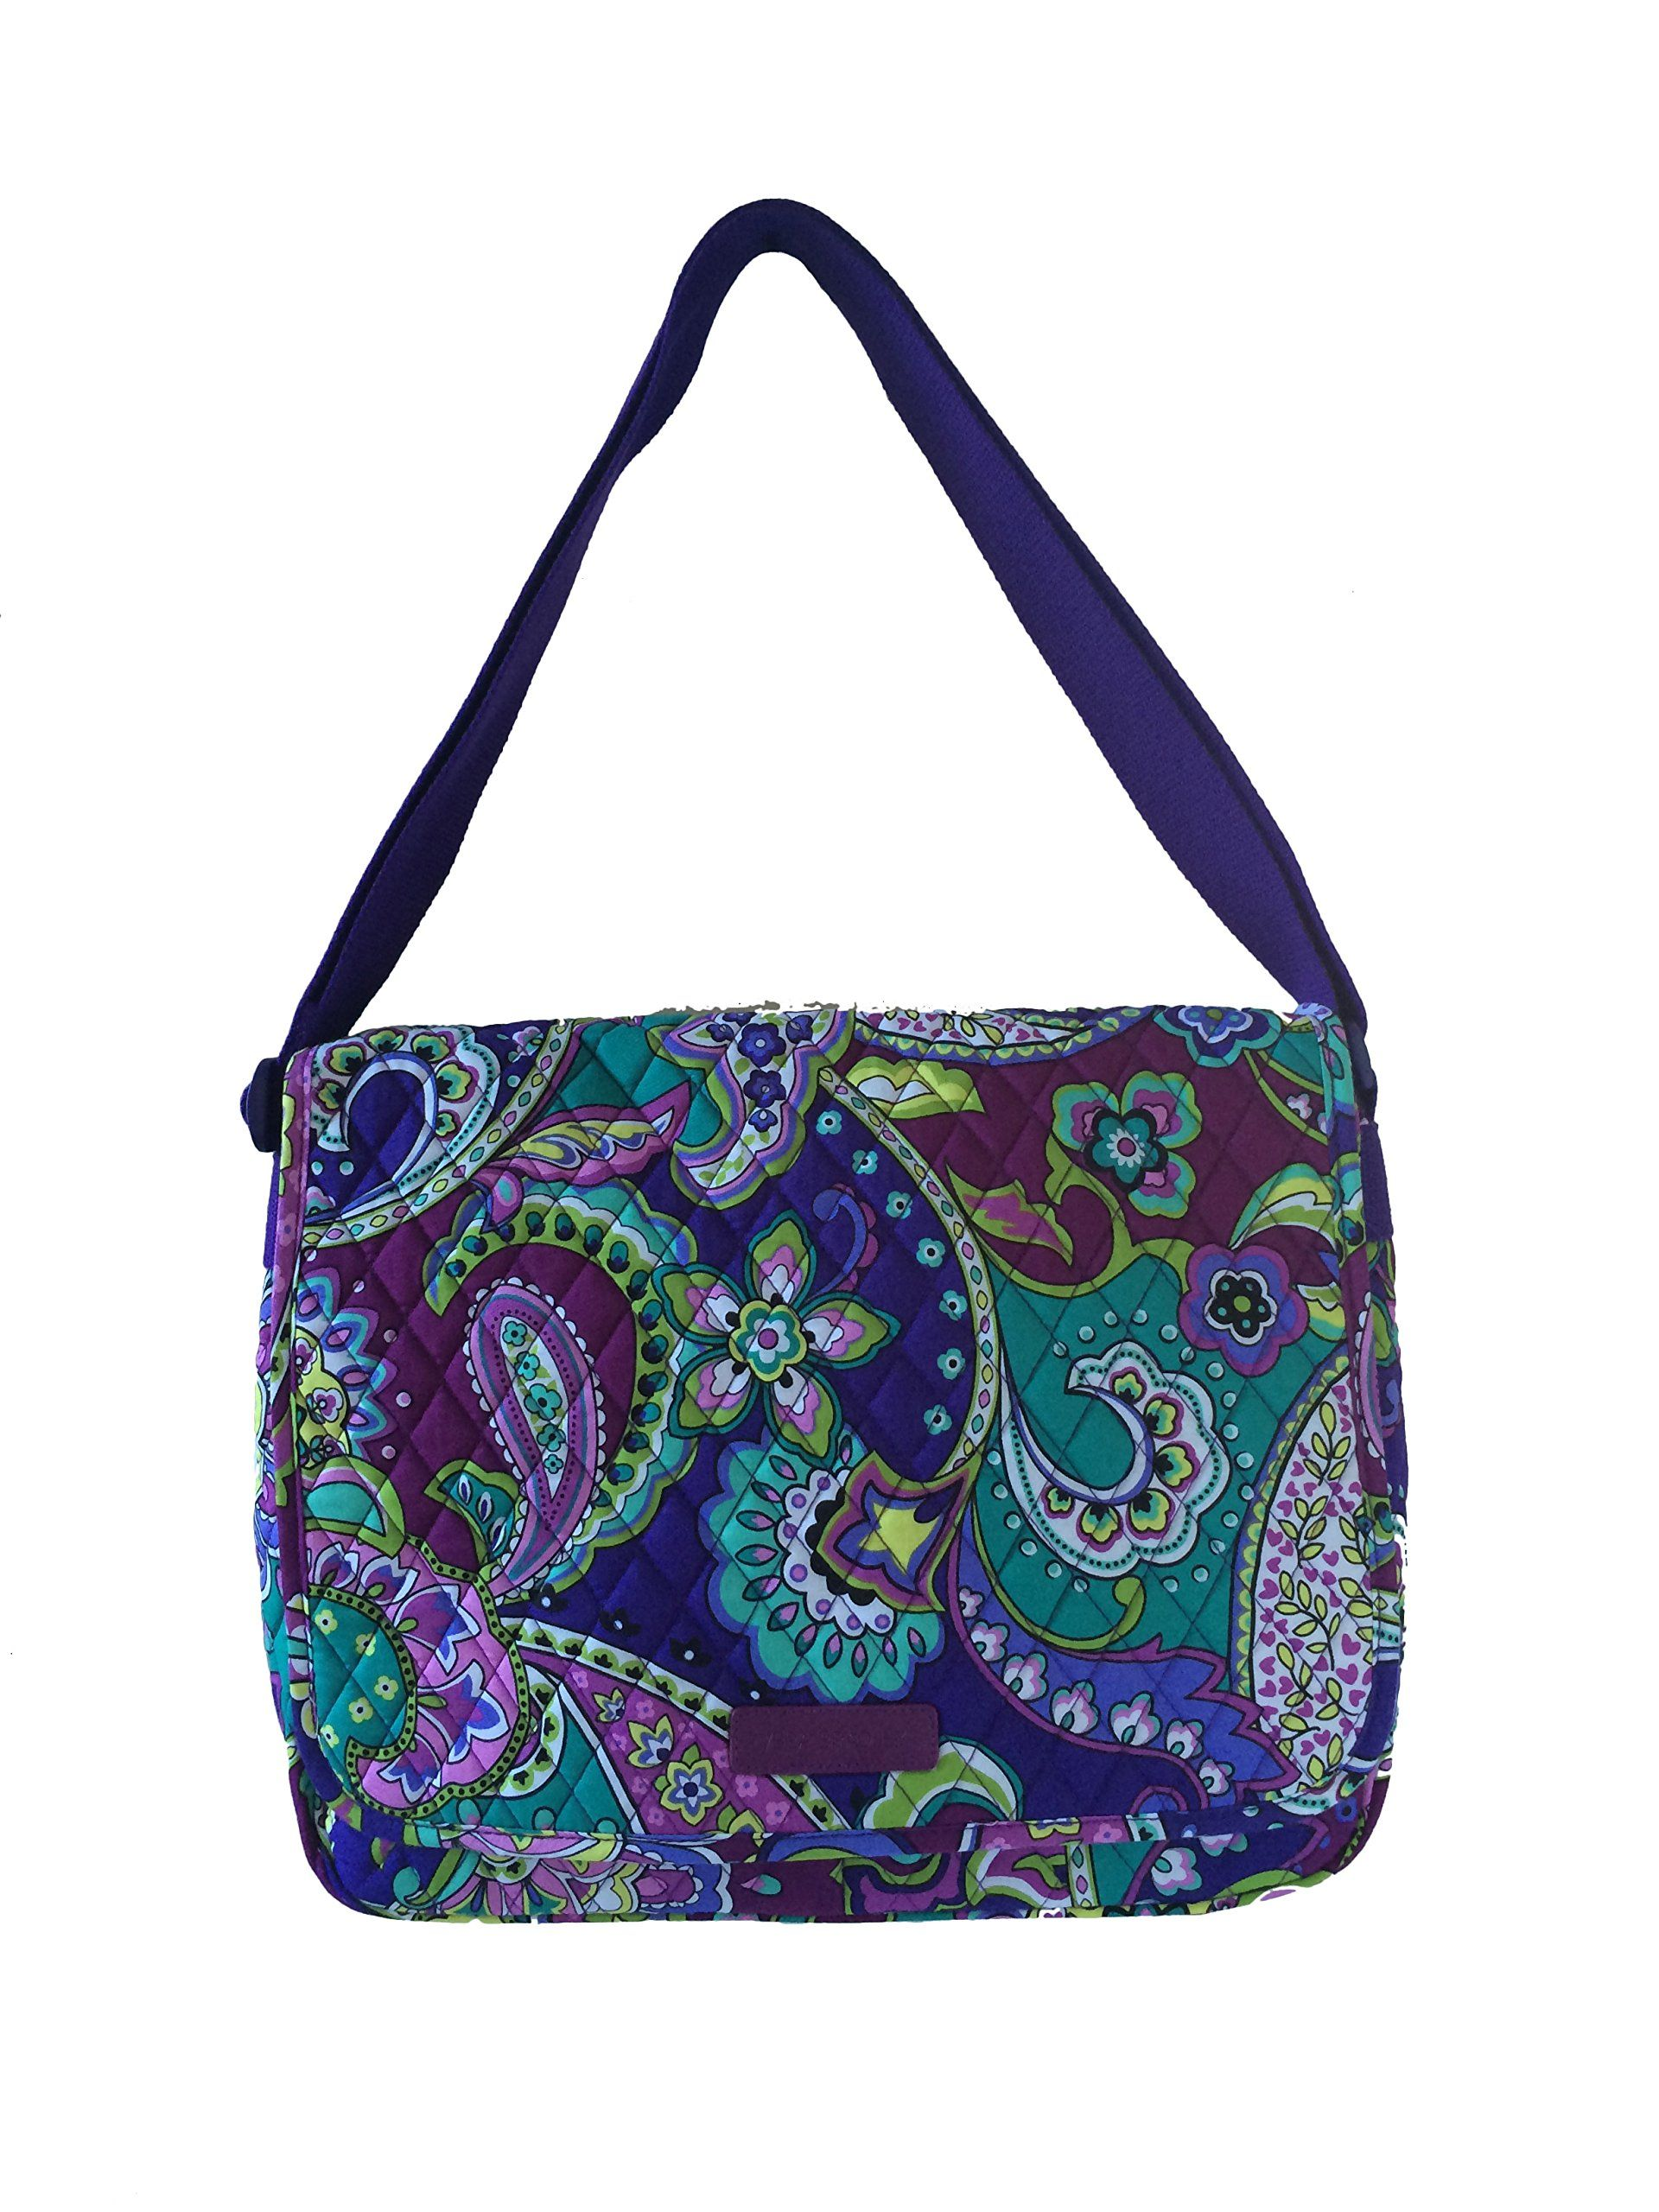 Vera Bradley Messenger Bag Updated Version with Solid Interiors (Heather  with Purple Interiors) 6c5261ec997b0